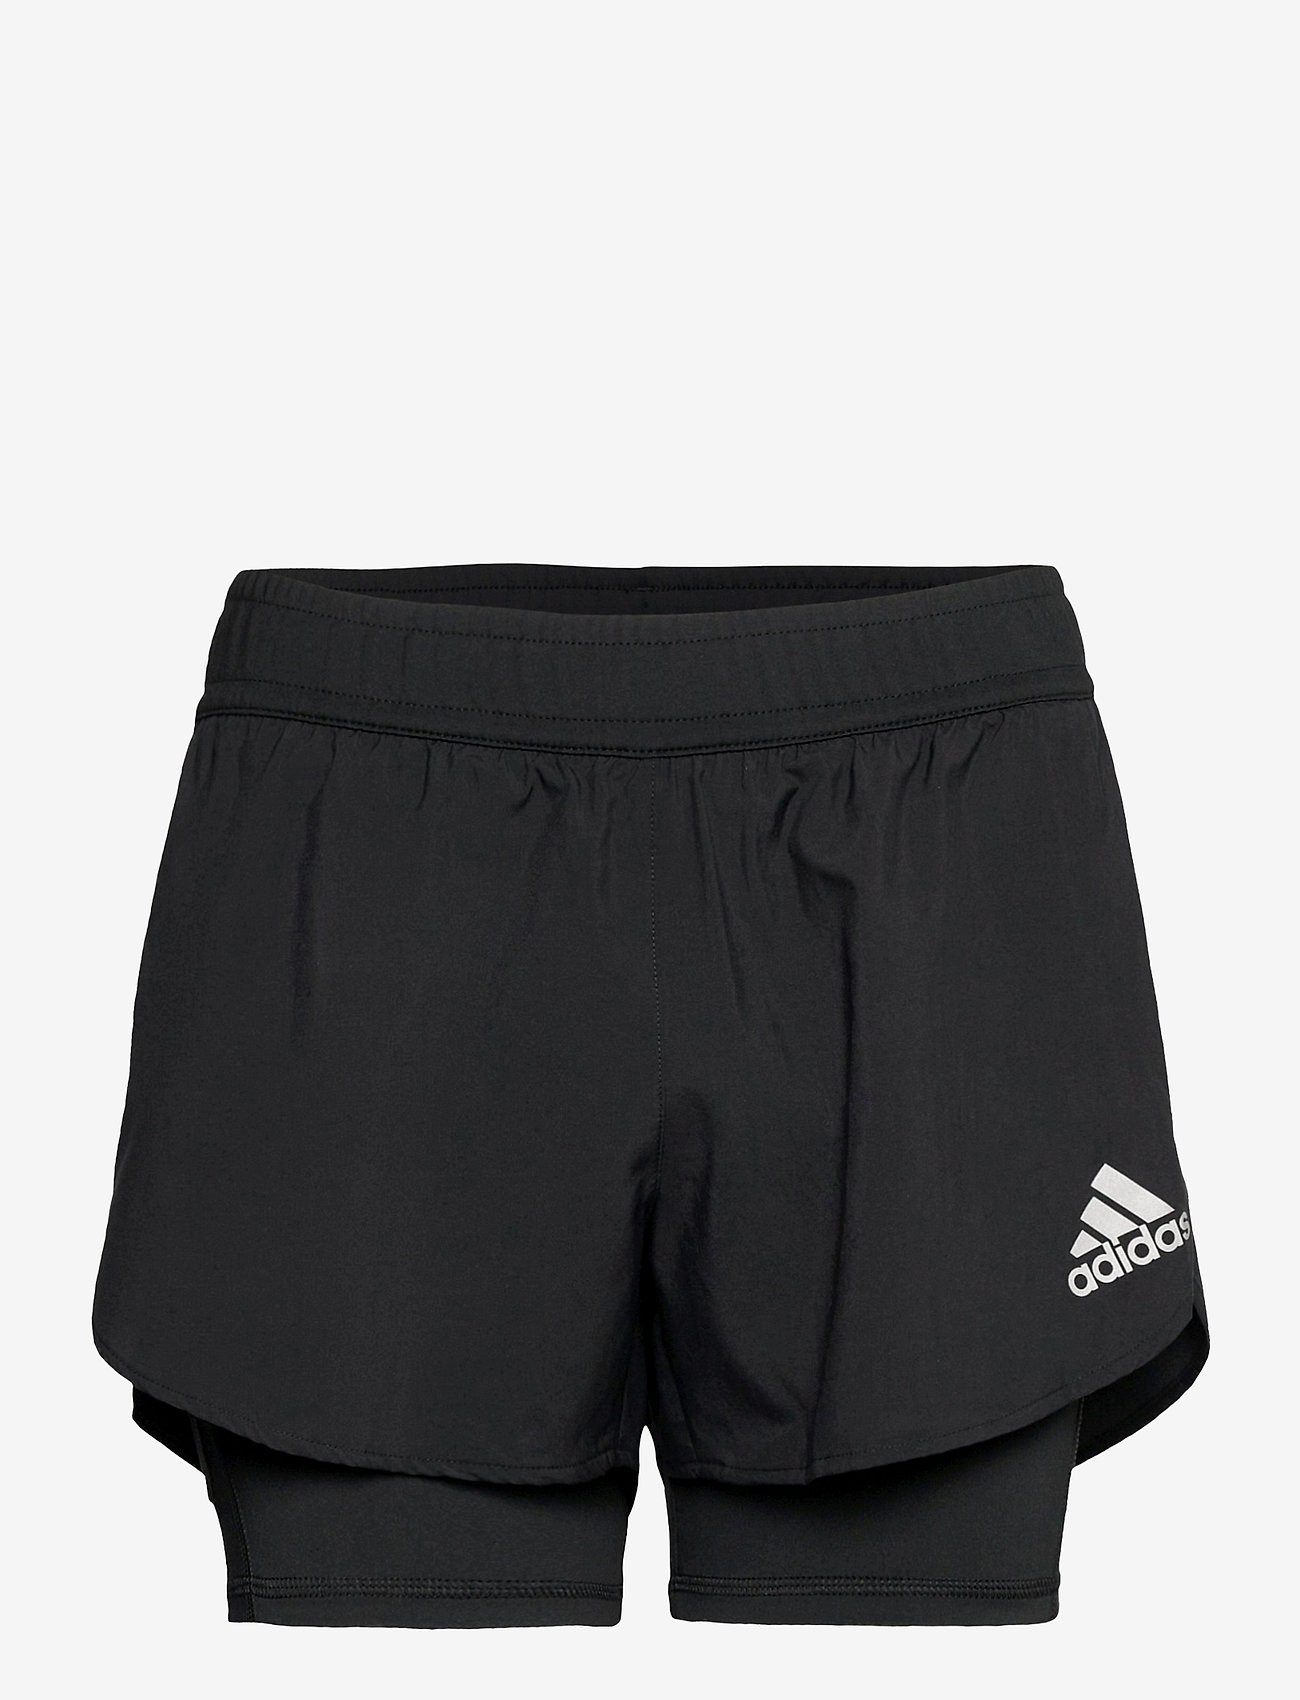 adidas Performance - Fast Primeblue Two-In-One Shorts W - träningsshorts - black - 1